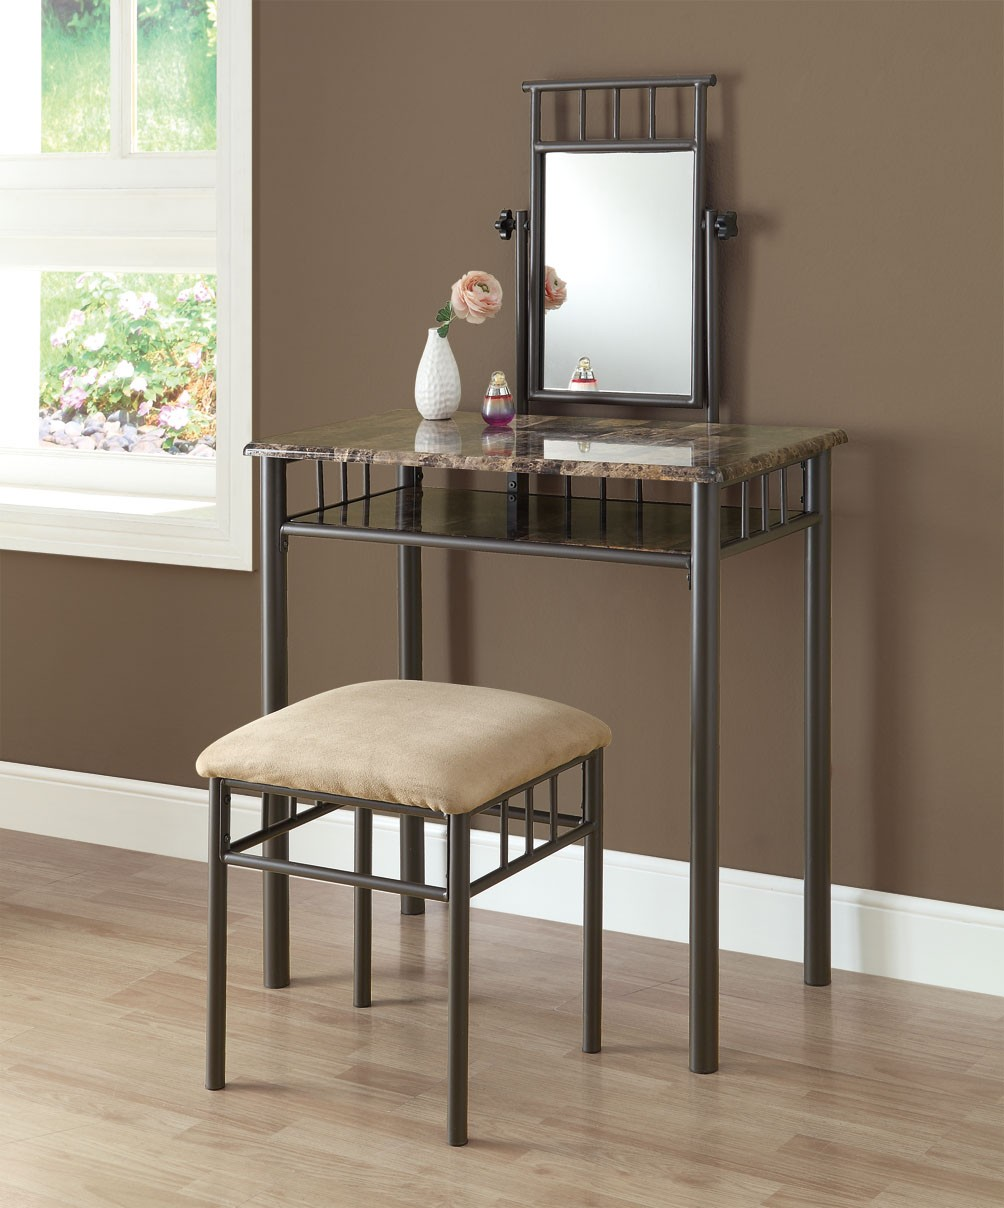 Vanity Tables Product : Cappuccino marble bronze vanity with stool from